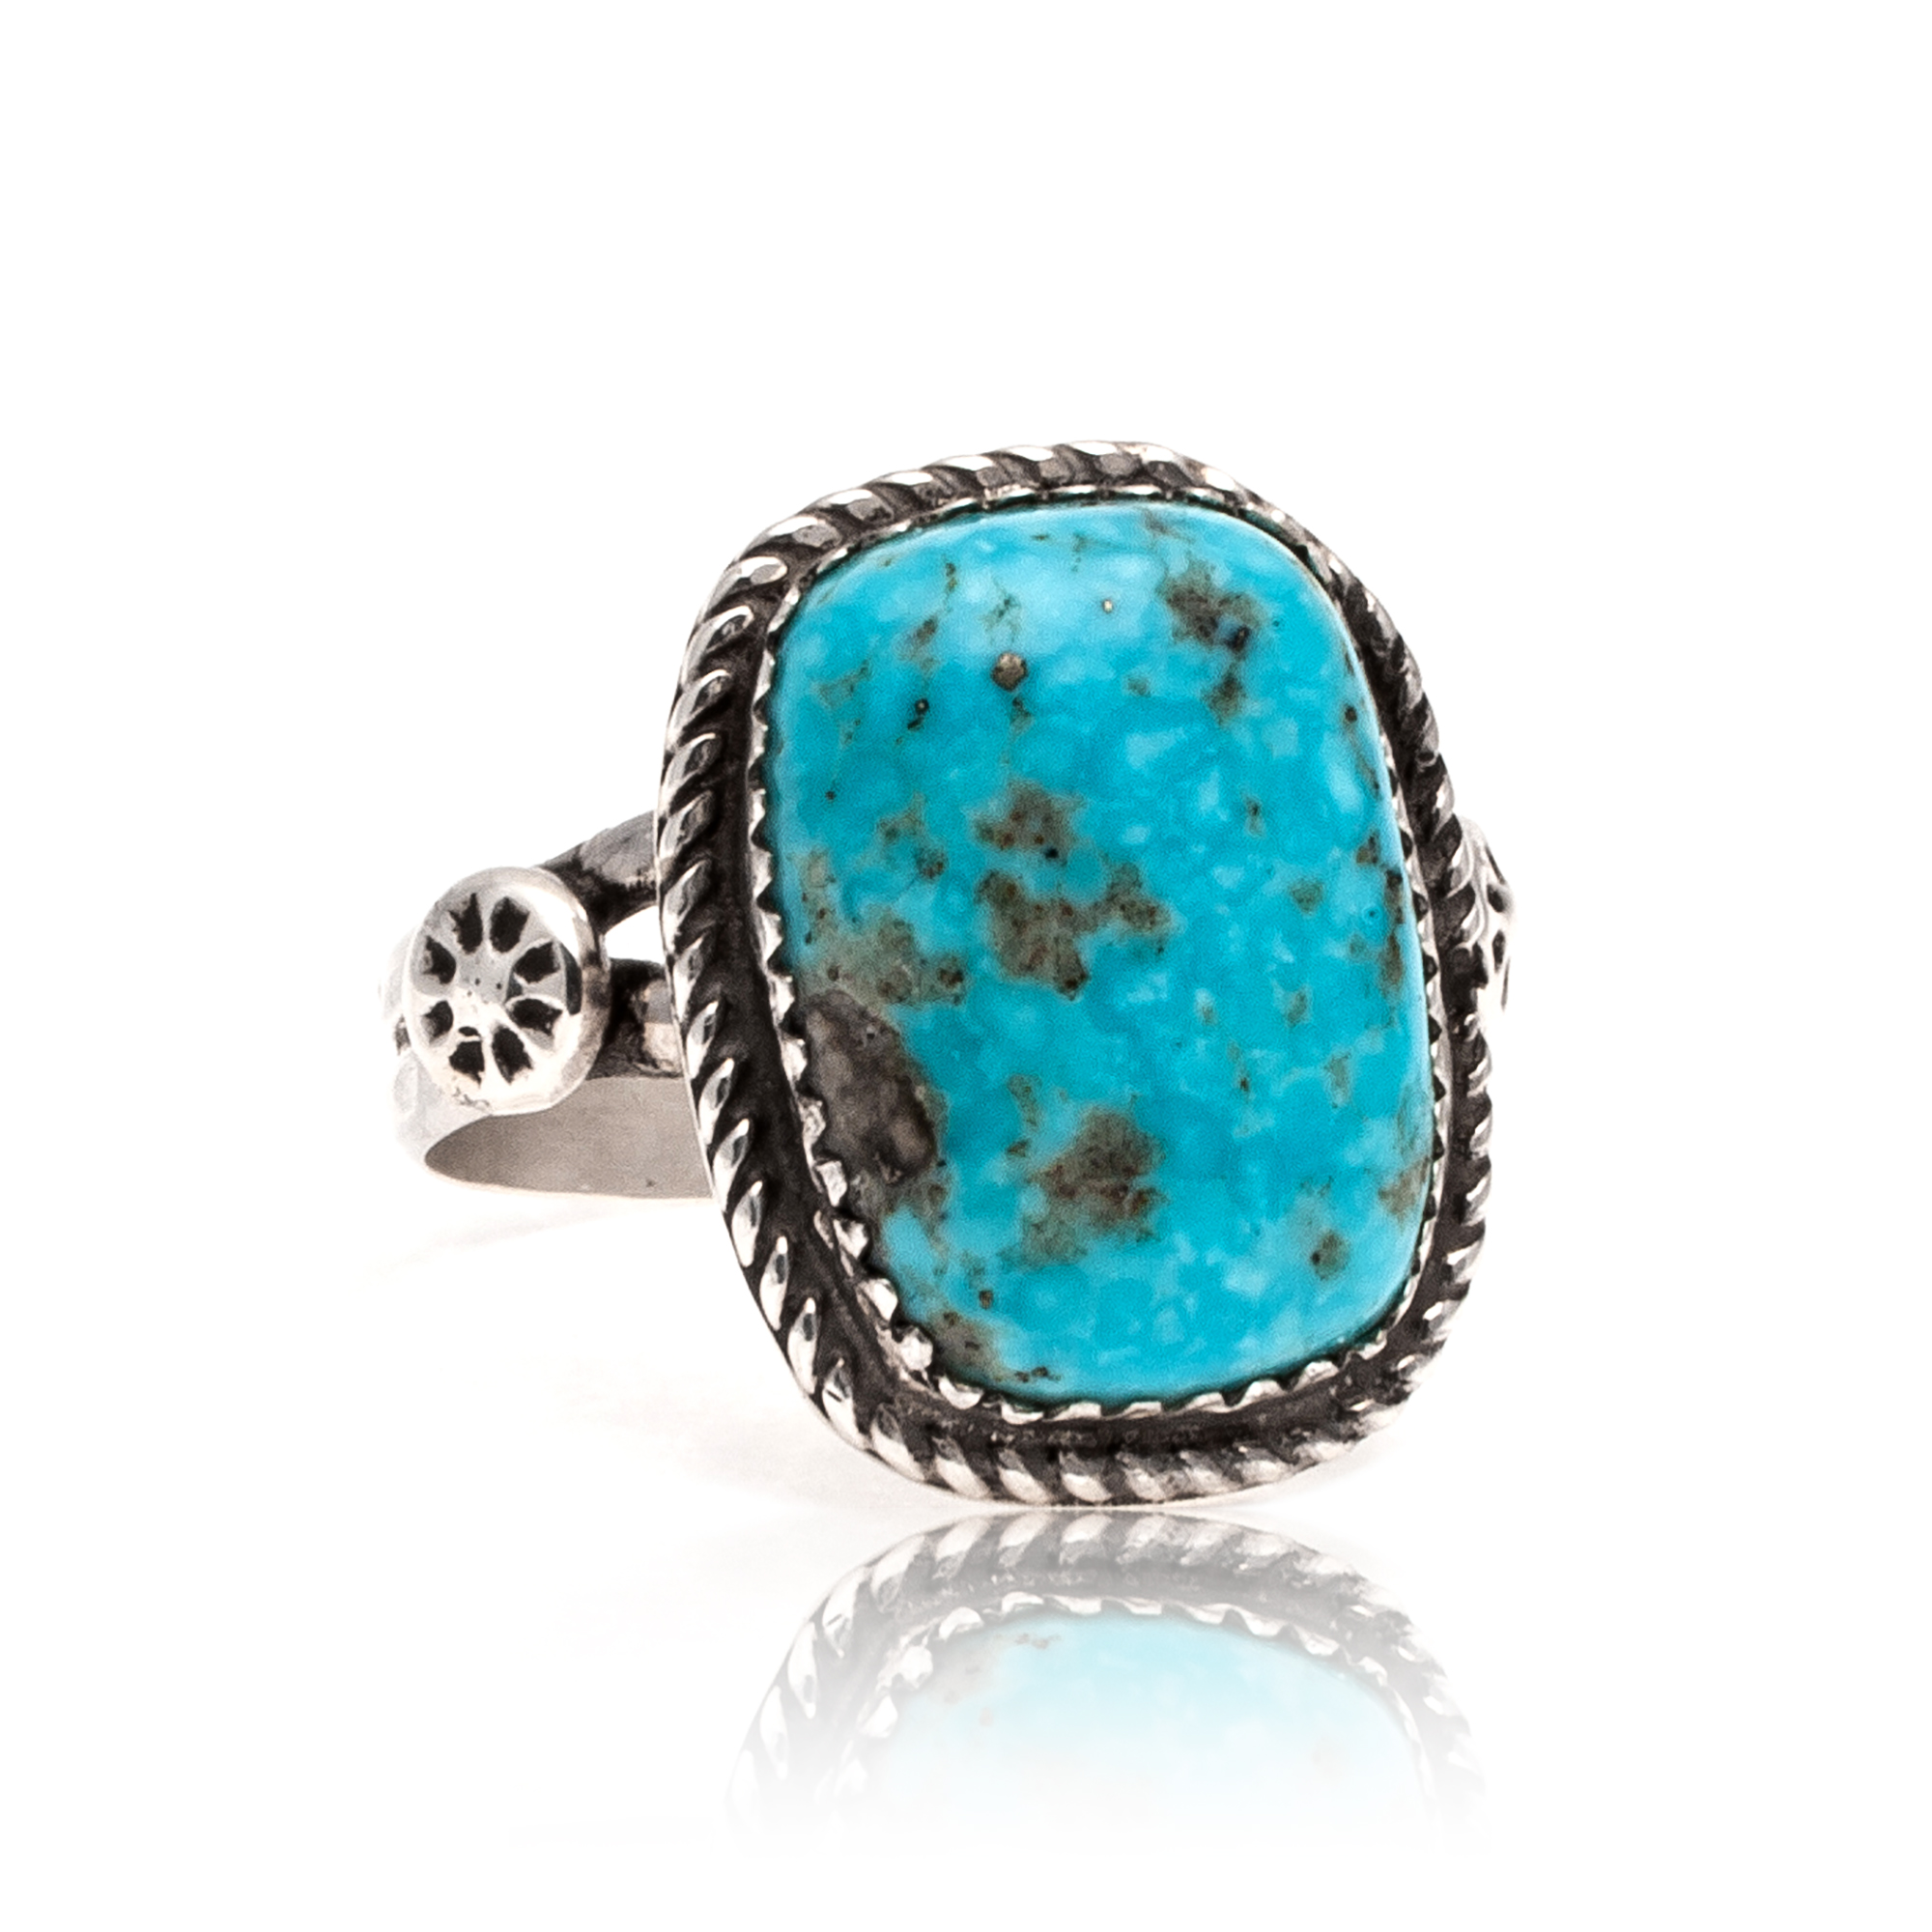 Natural Turquoise .925 Sterling Silver Certified Authentic Navajo Native American Handmade Ring  17001-1 All Products 17001-1 17001-1 (by LomaSiiva)